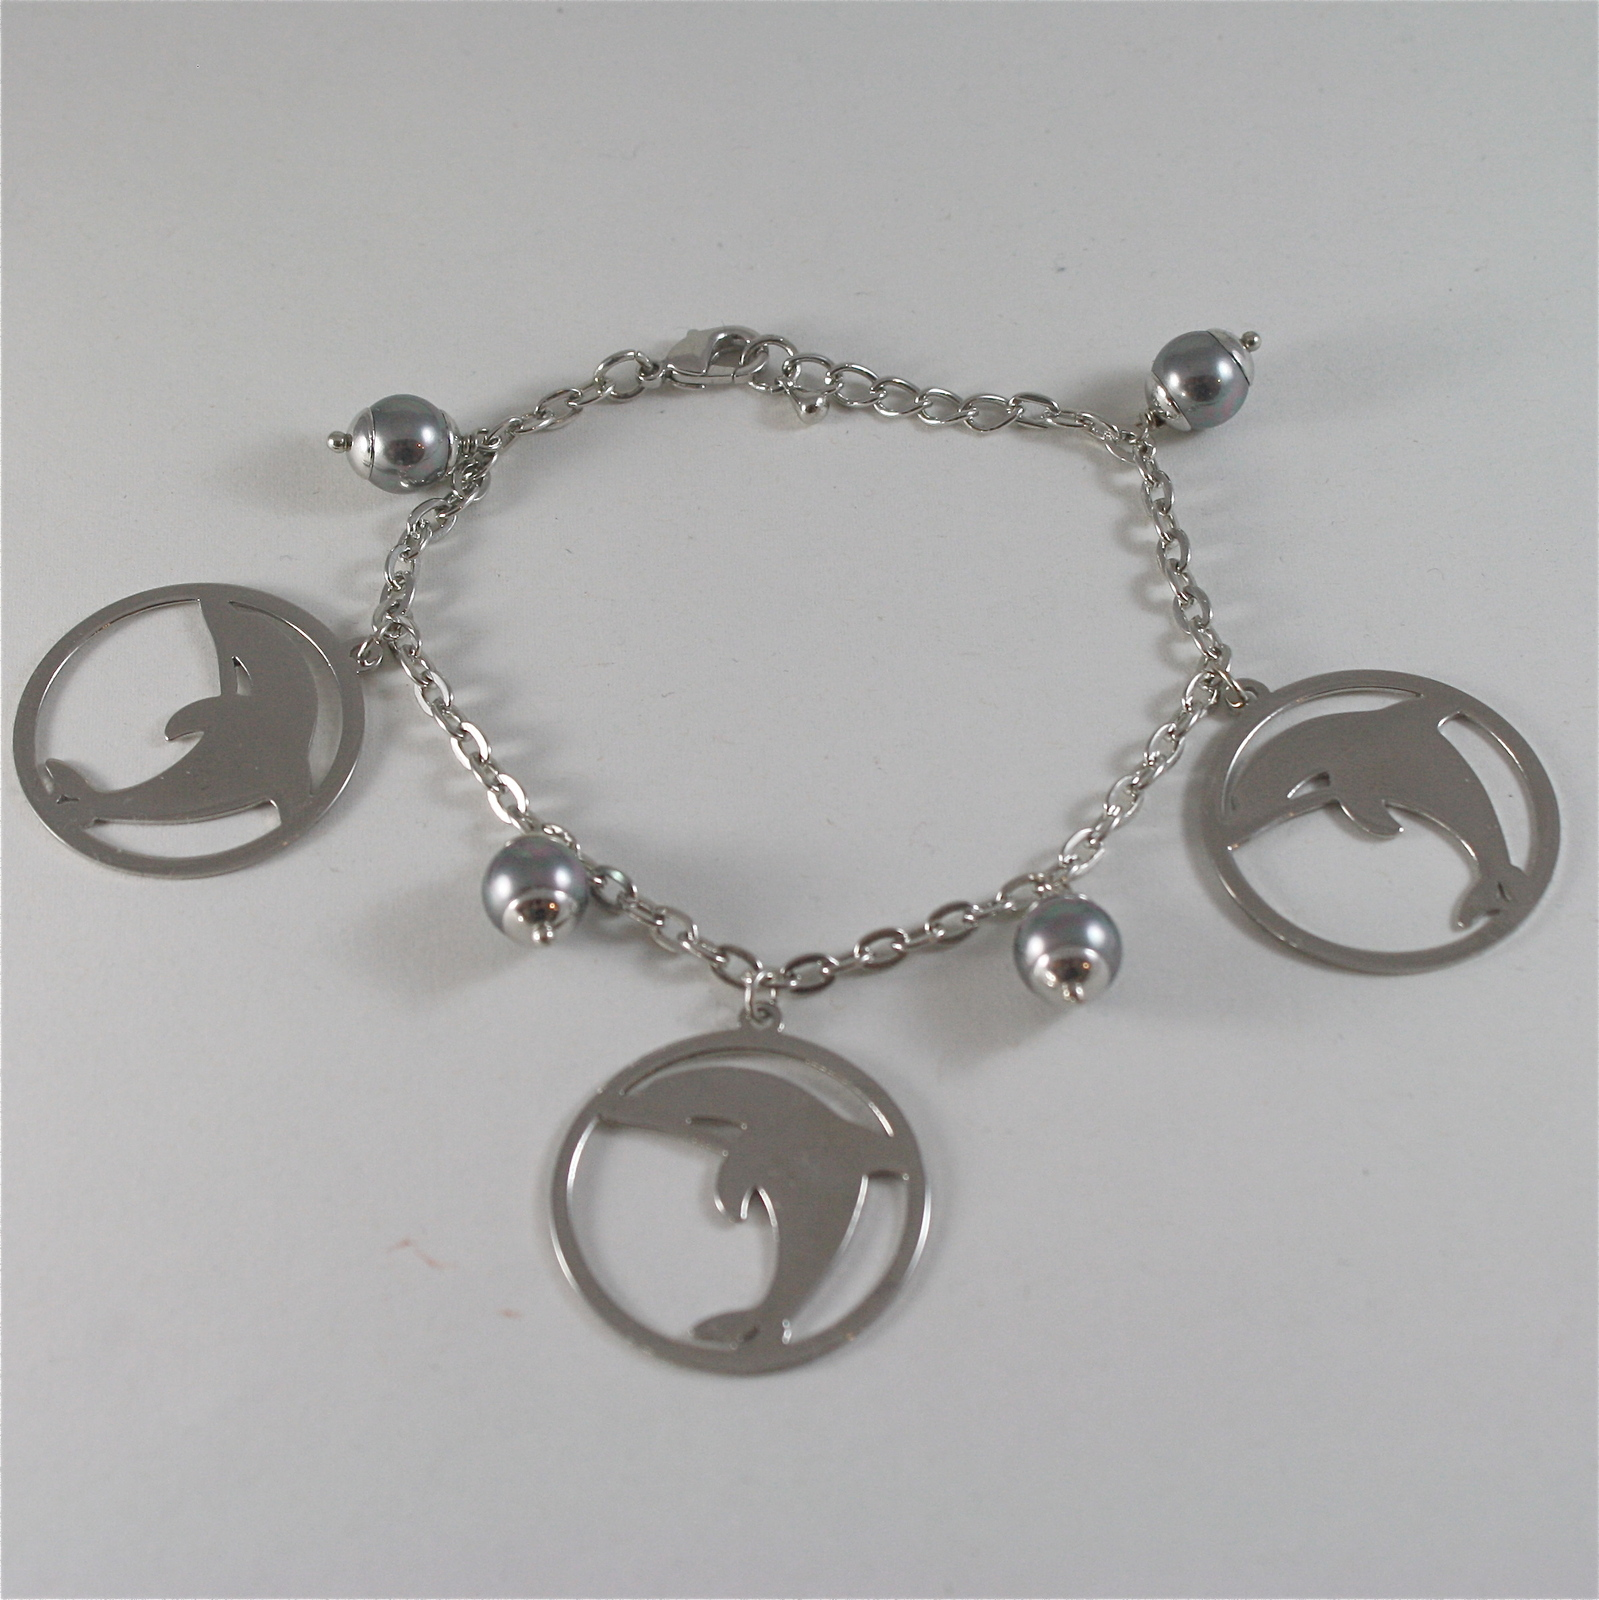 STAINLESS STEEL BRACELET WITH GREY SYNTHETIC PEARLS AND DOLPHIN CHARMS, 7.48 IN